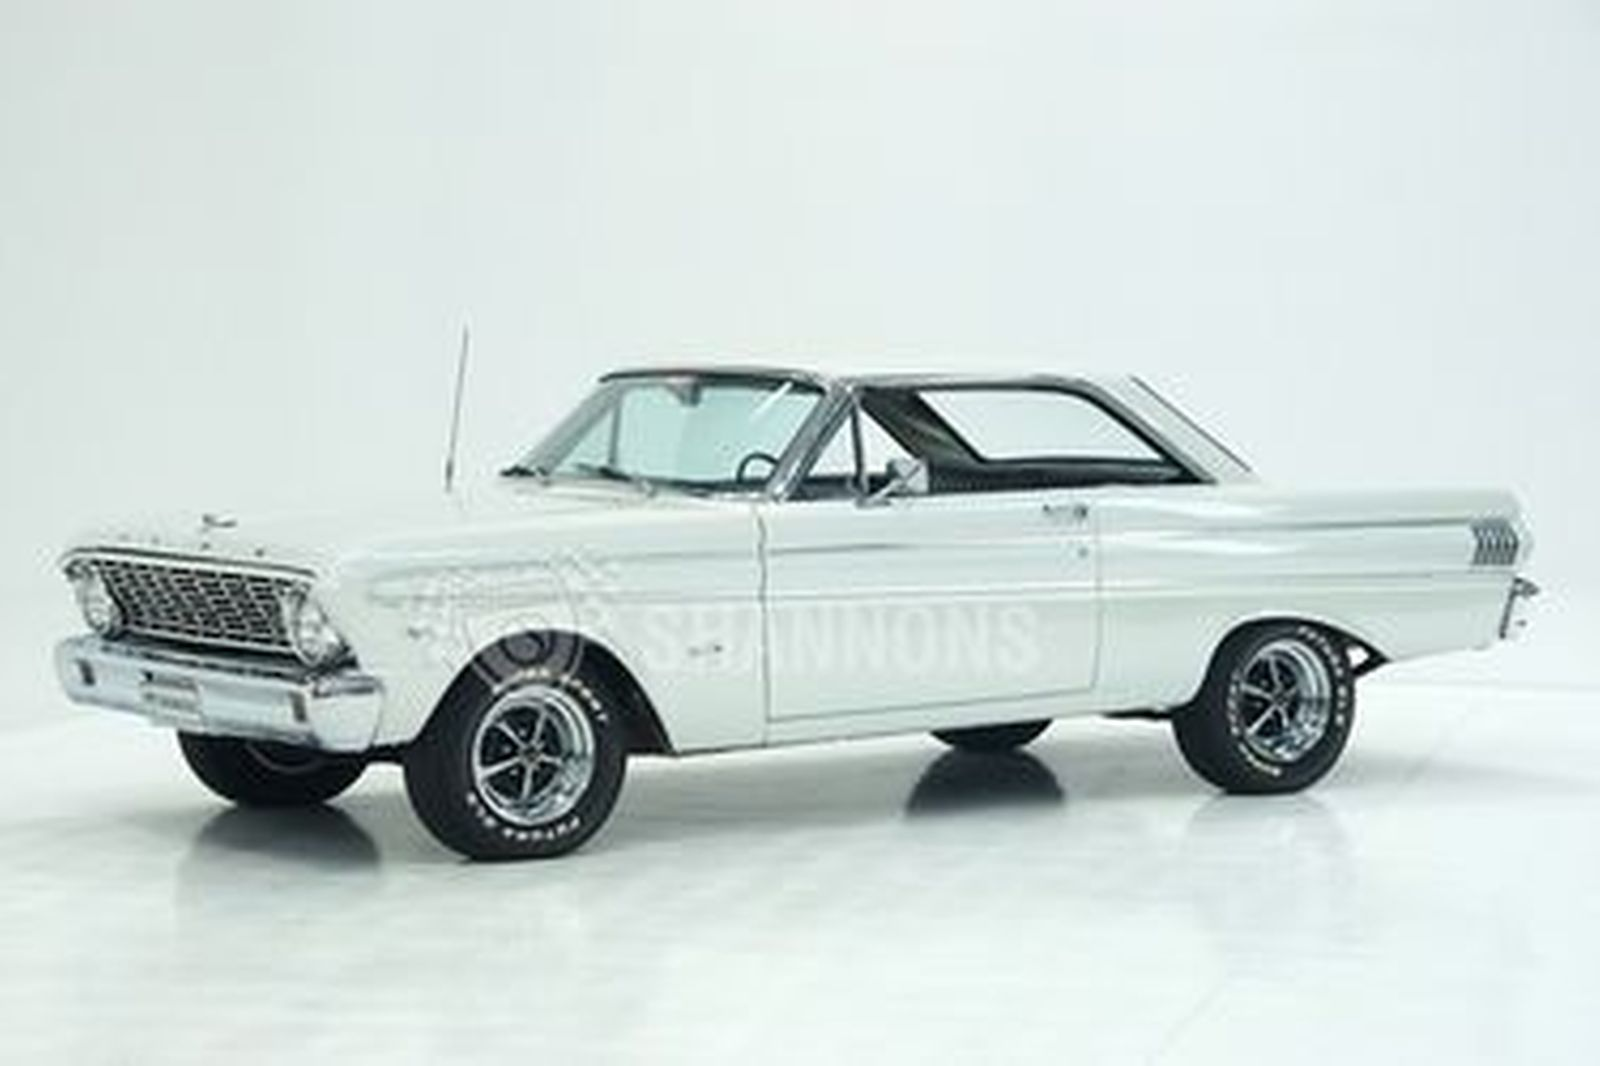 Sold: Ford Falcon 260 V8 Futura Coupe (LHD) Auctions - Lot